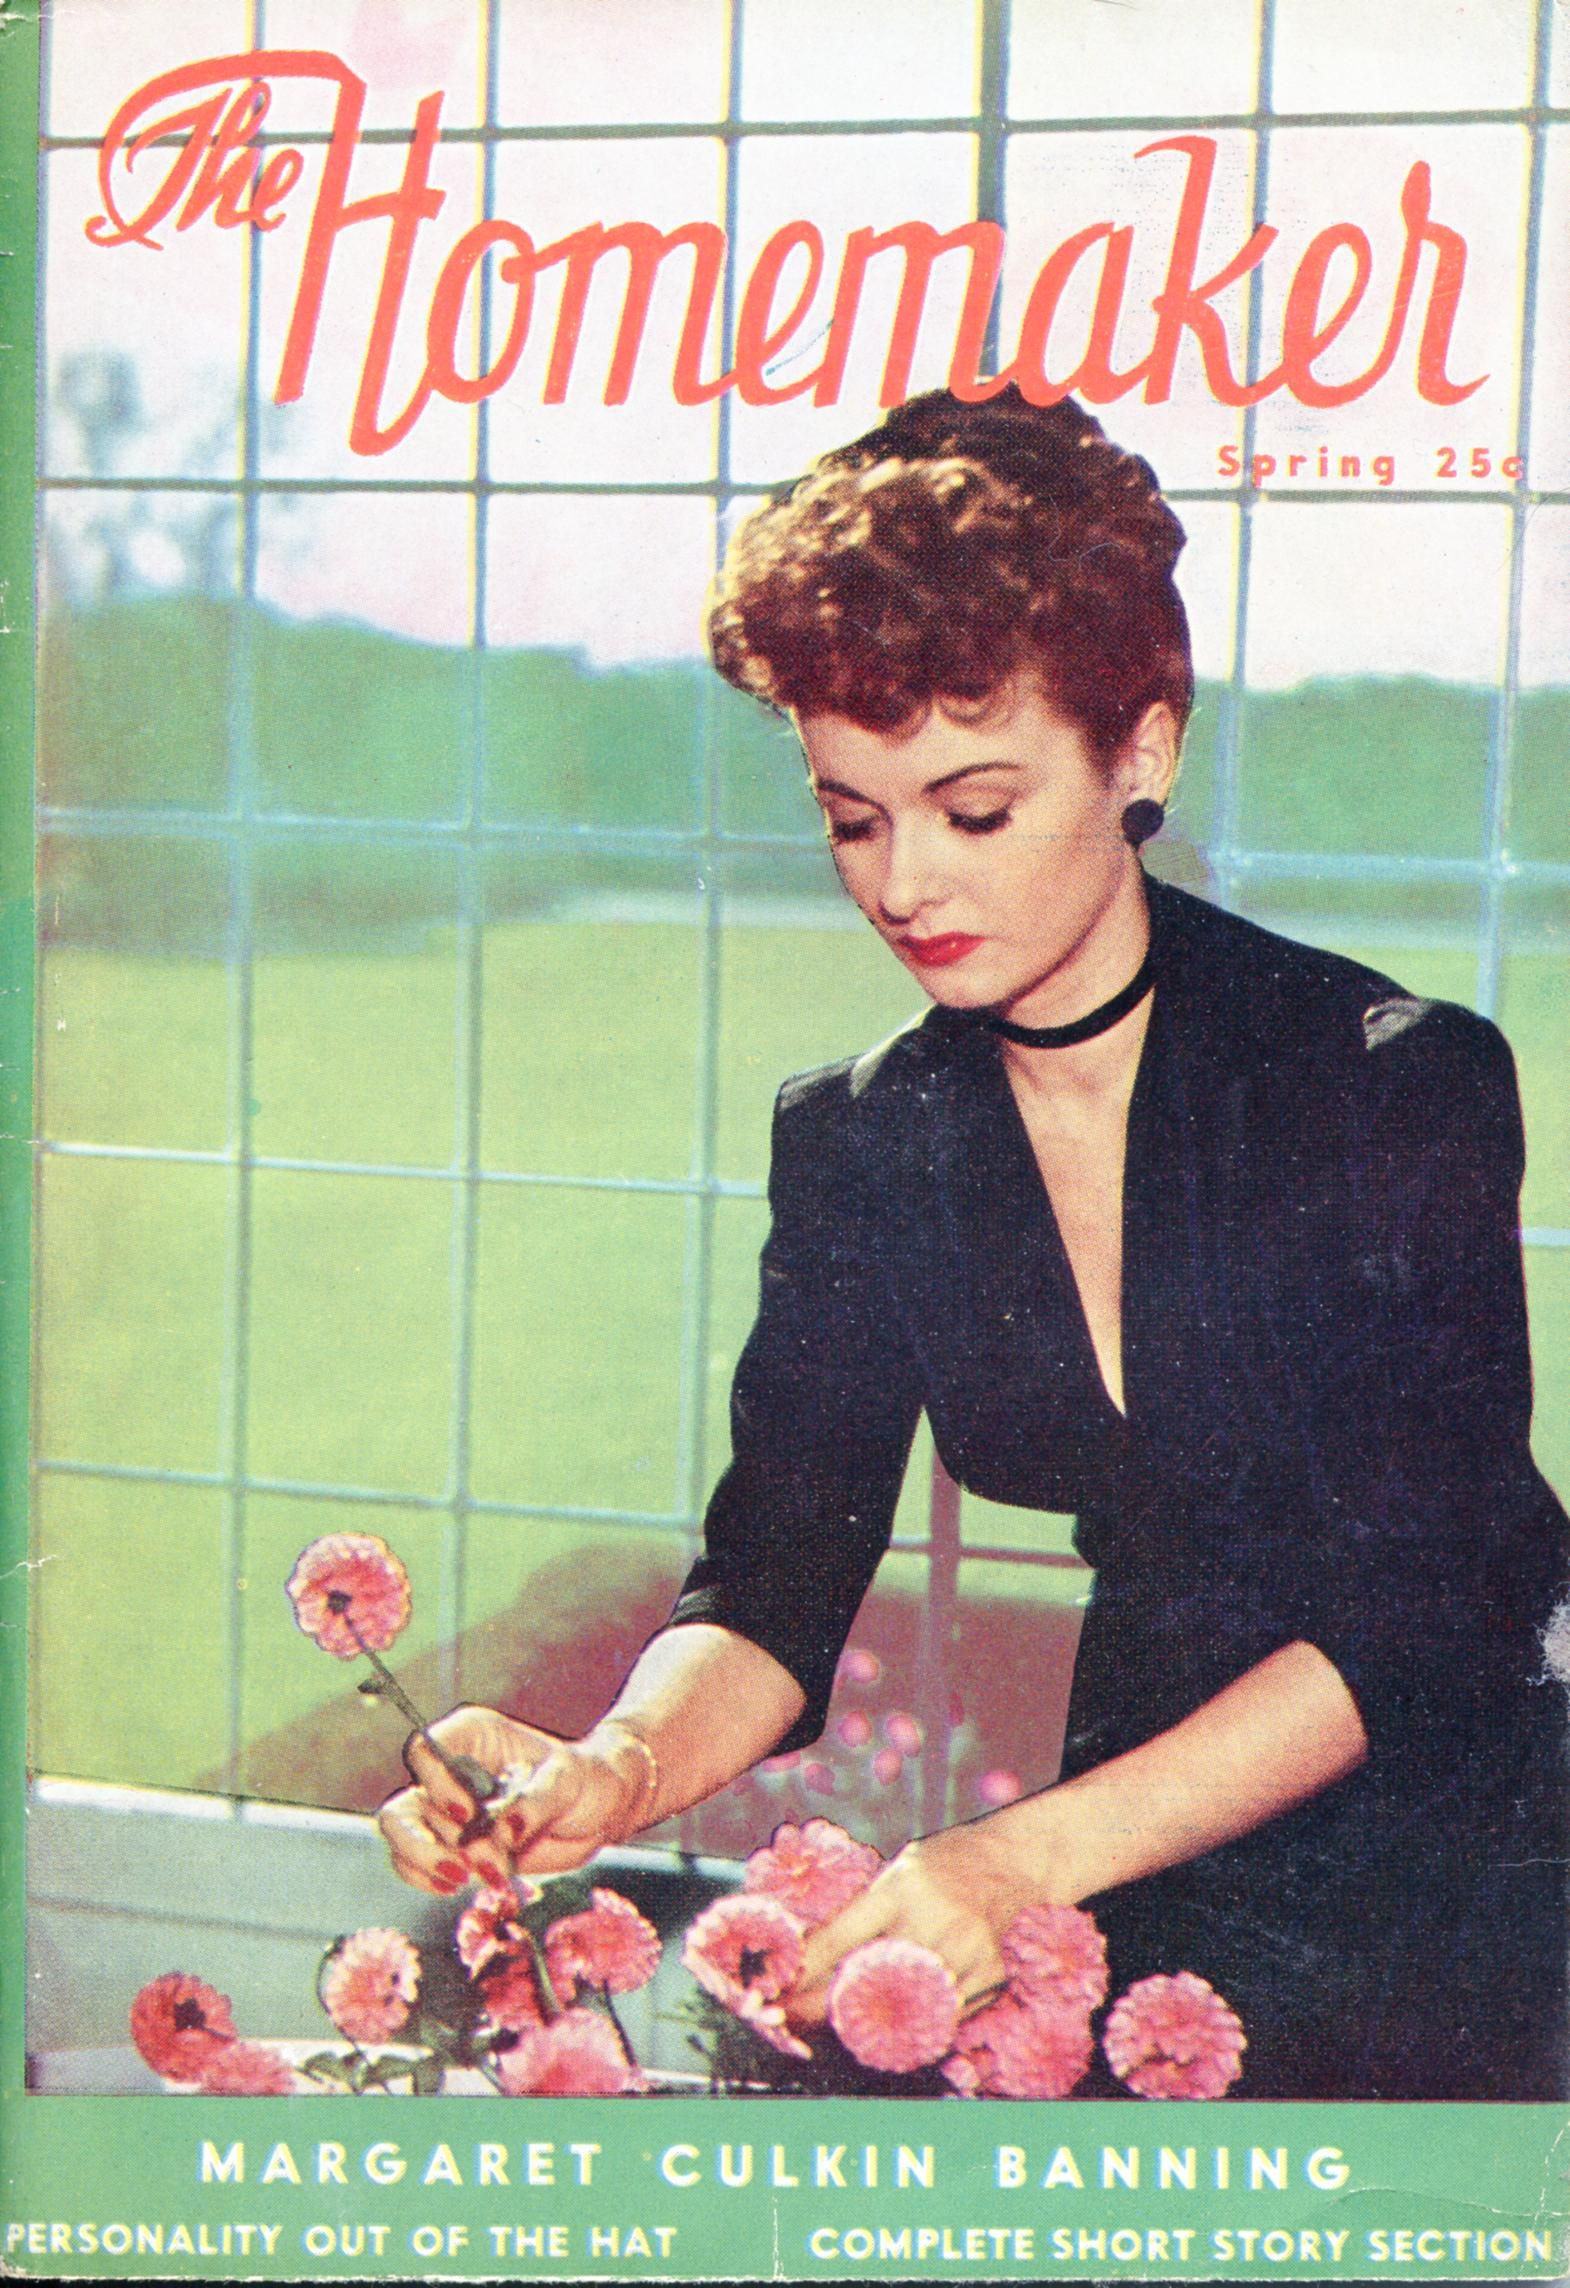 The Beautiful Spring 1946 Cover Of The Homemaker Magazine